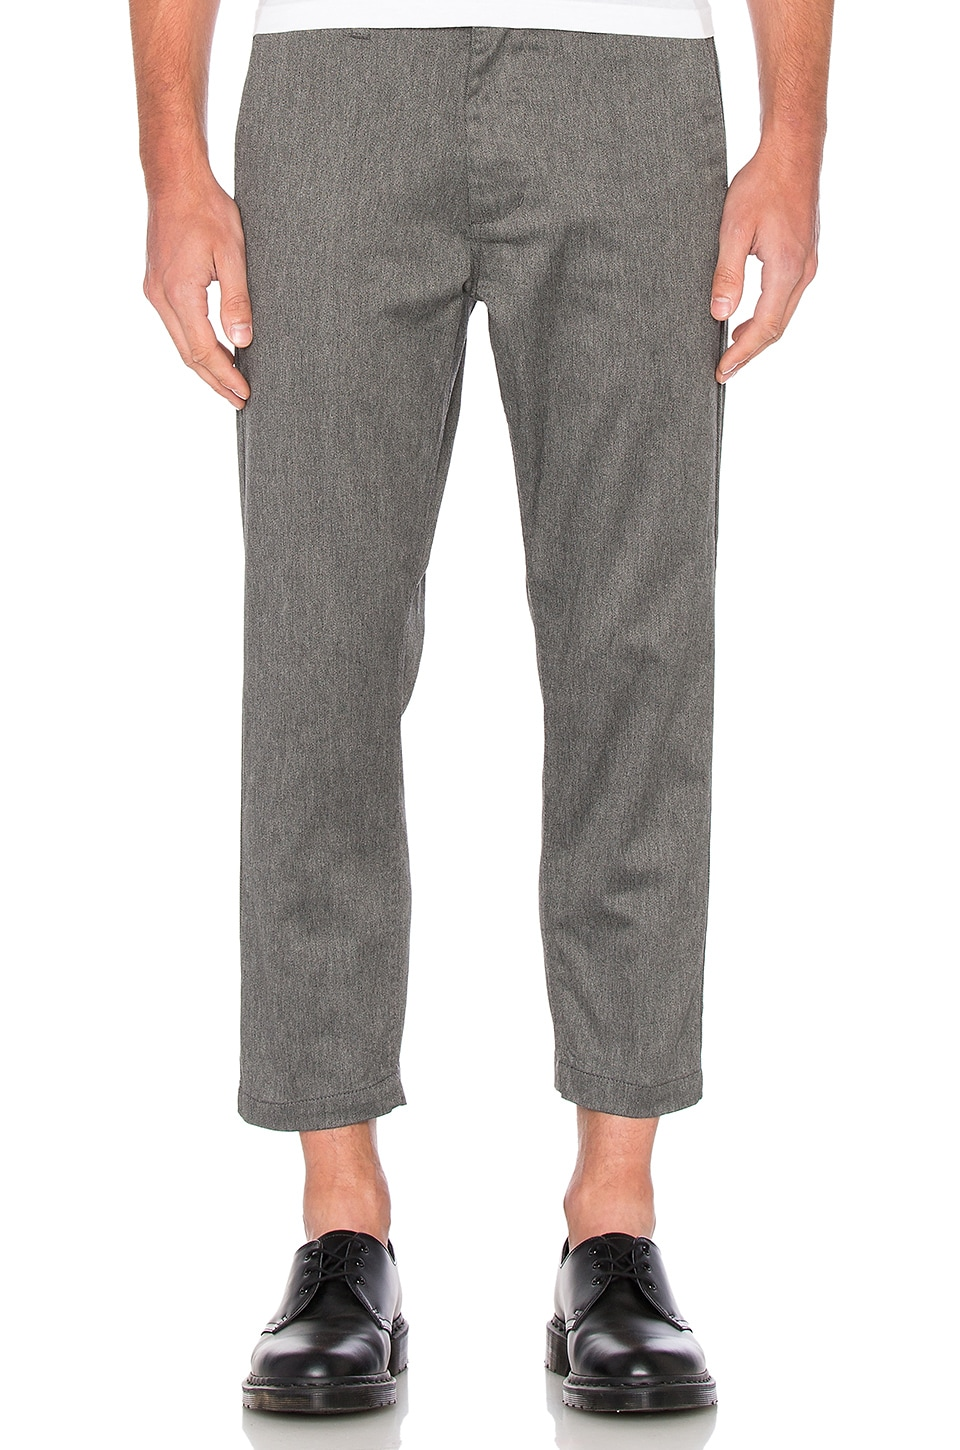 Straggler Flooded Pant by Obey